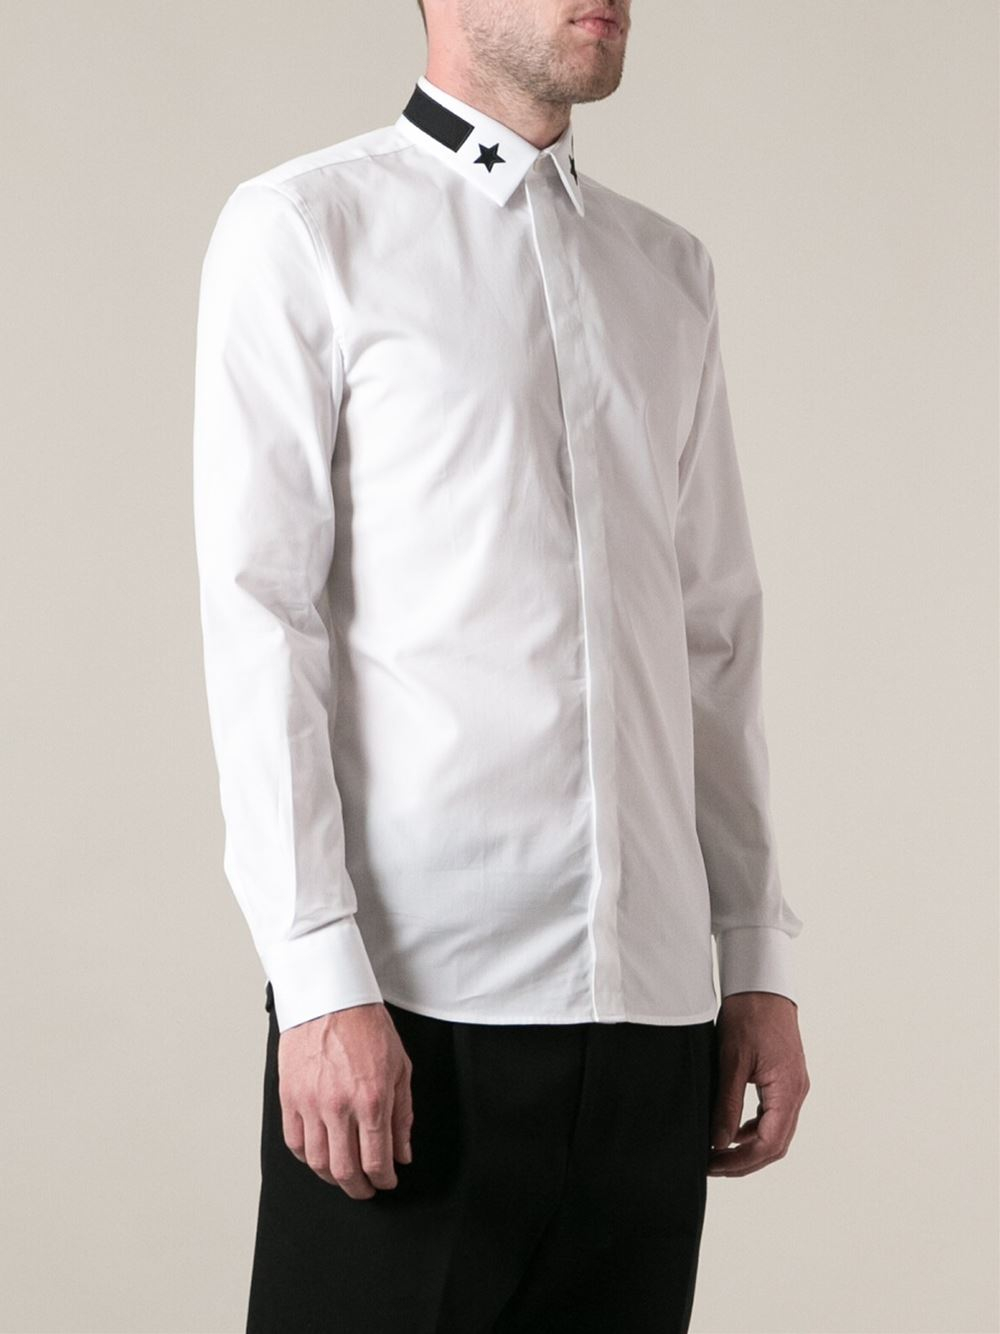 Lyst Givenchy Embroidered Collar Shirt In White For Men